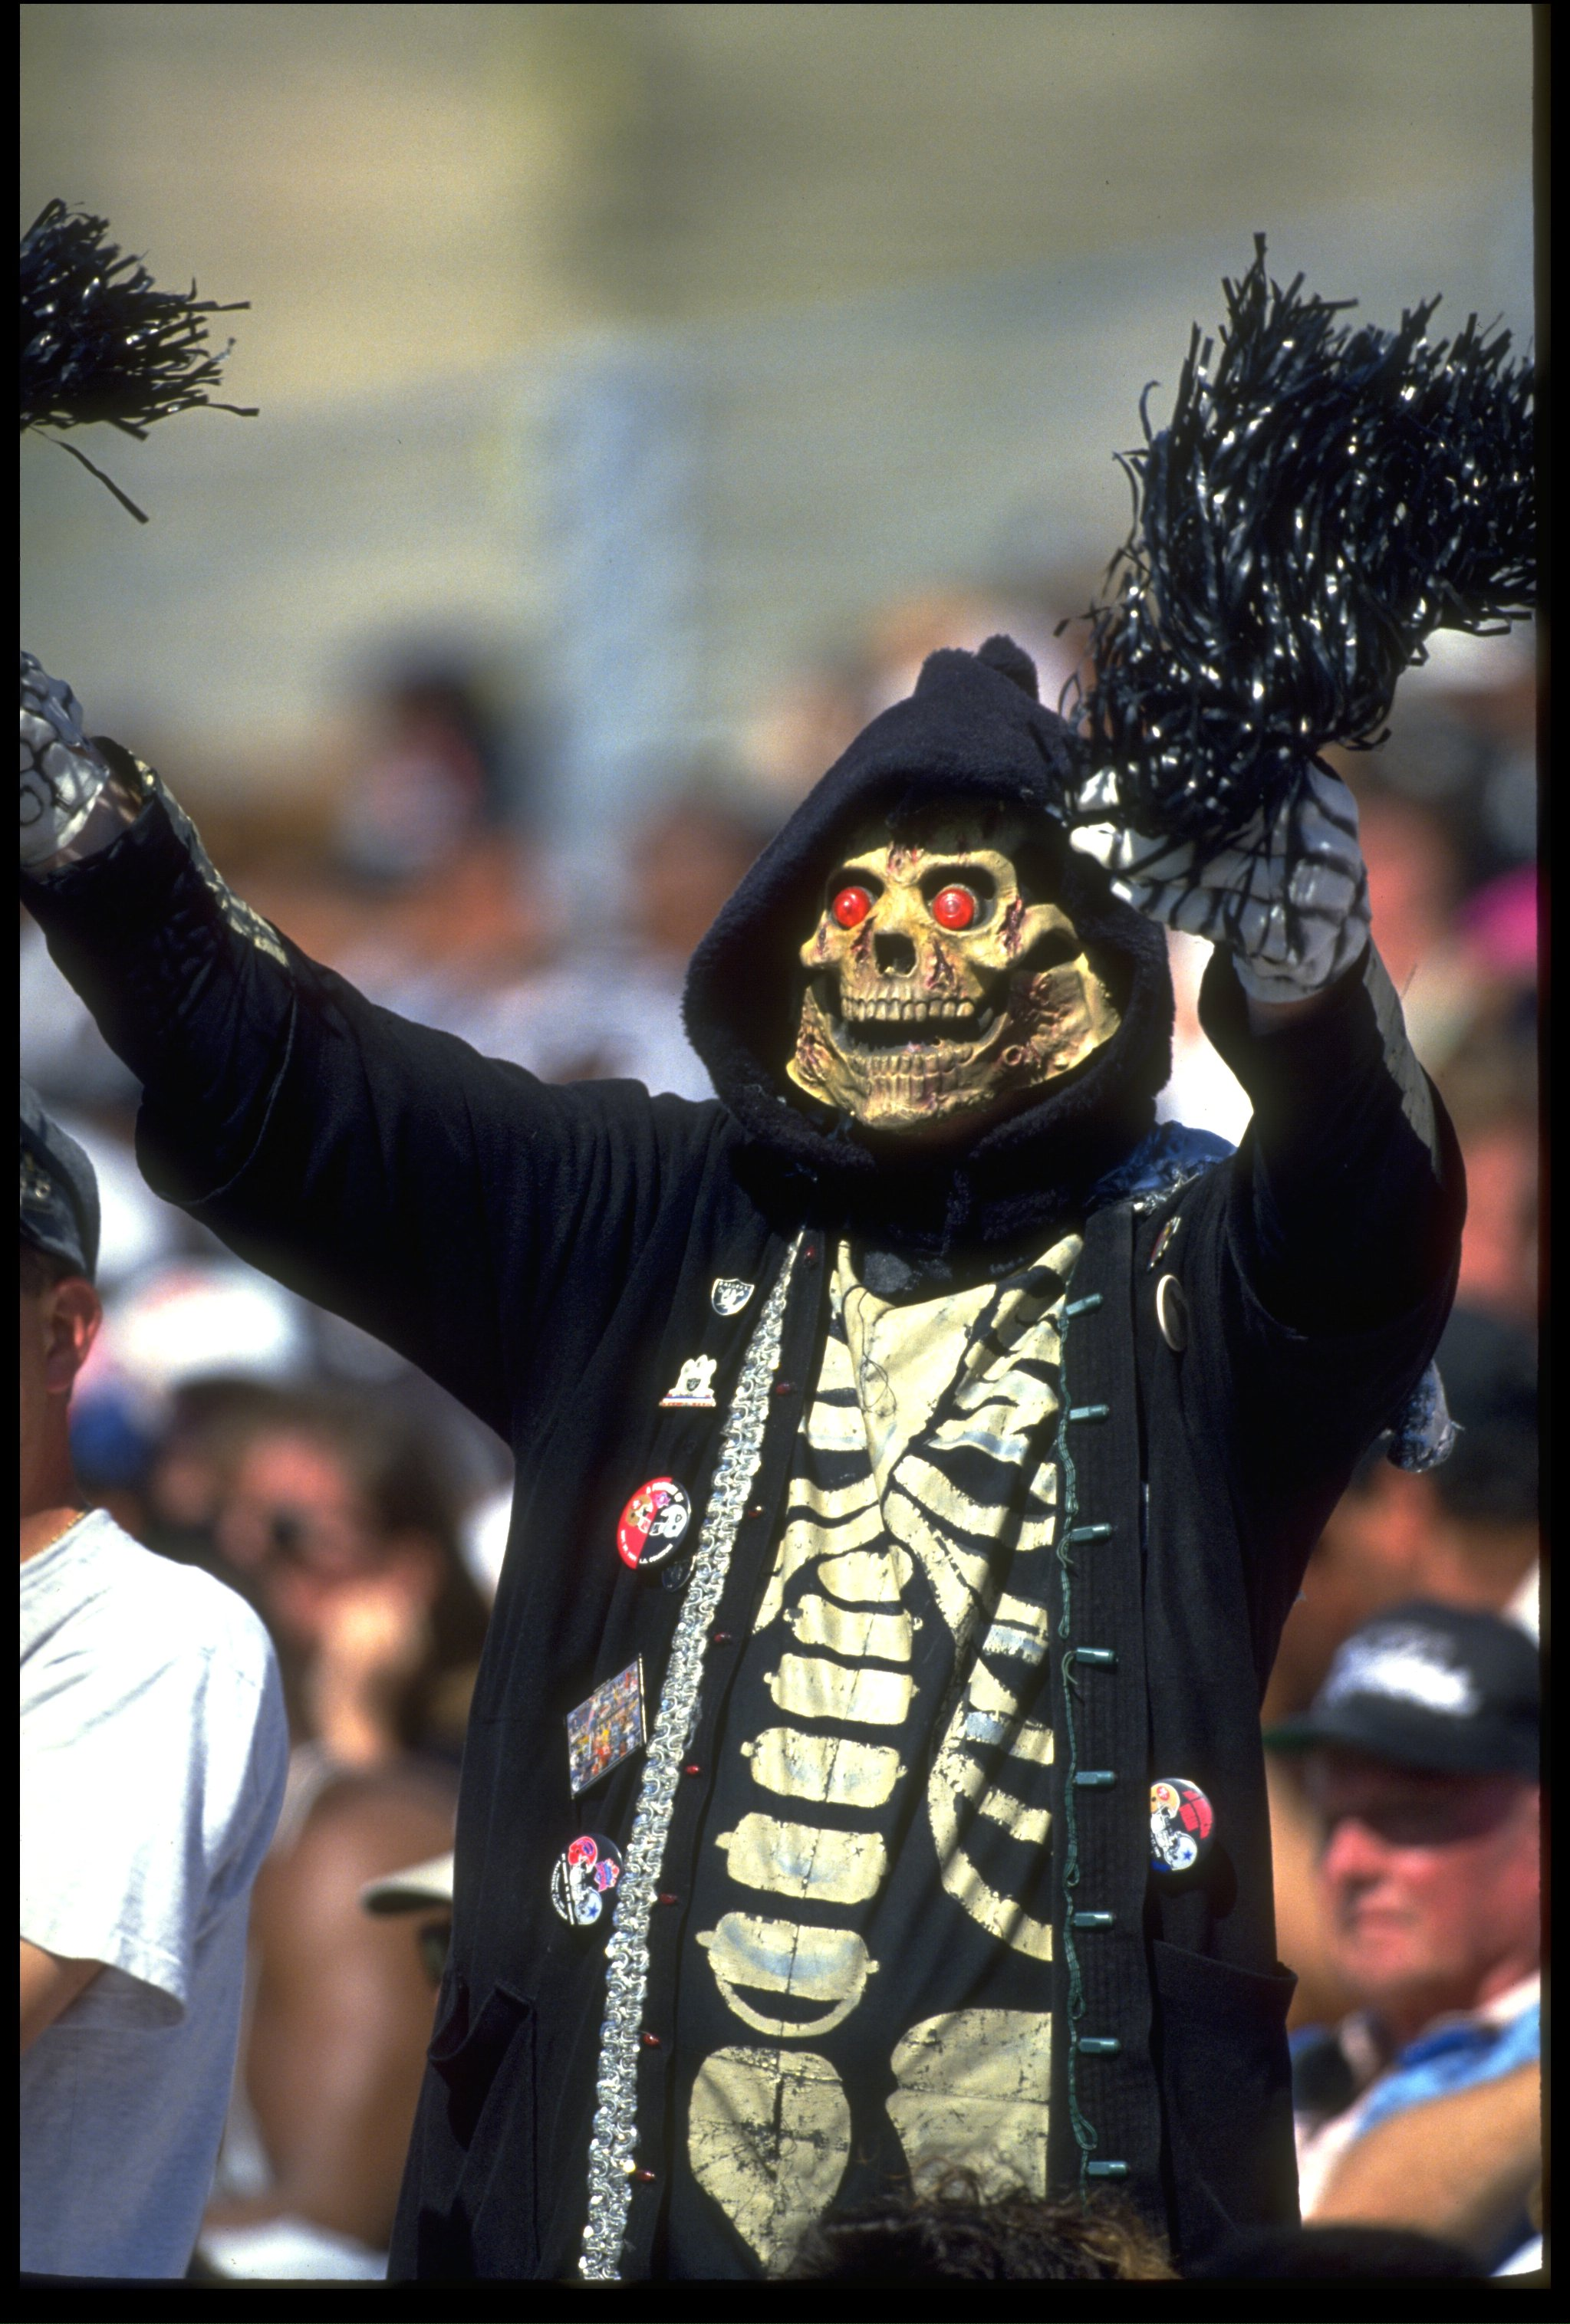 5 SEP 1993:  A DIEHARD LOS ANGELES RAIDERS FAN SUPPORTS HIS TEAM DURING THE RAIDERS 24-7 WIN OVER THE MINNESOTA VIKINGS AT THE MEMORIAL COLISEUM IN LOS ANGELES, CALIFORNIA.  MANDATORY CREDIT:  MIKE POWELL/ALLSPORT